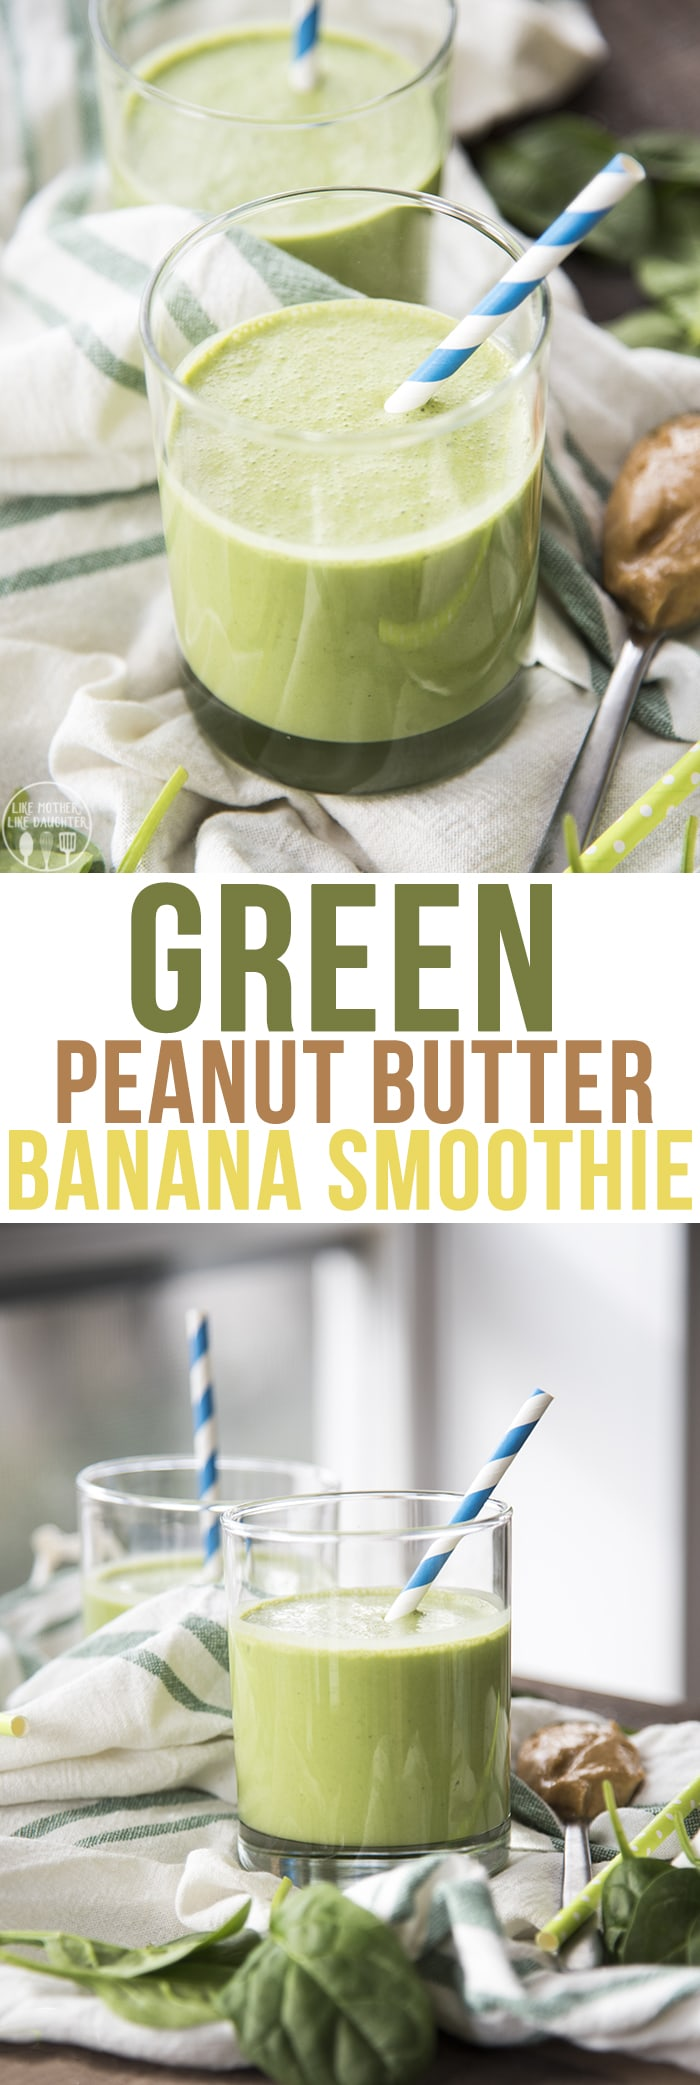 A green banana peanut butter smoothie that is perfect for a healthy and nutritious breakfast, or light snack.